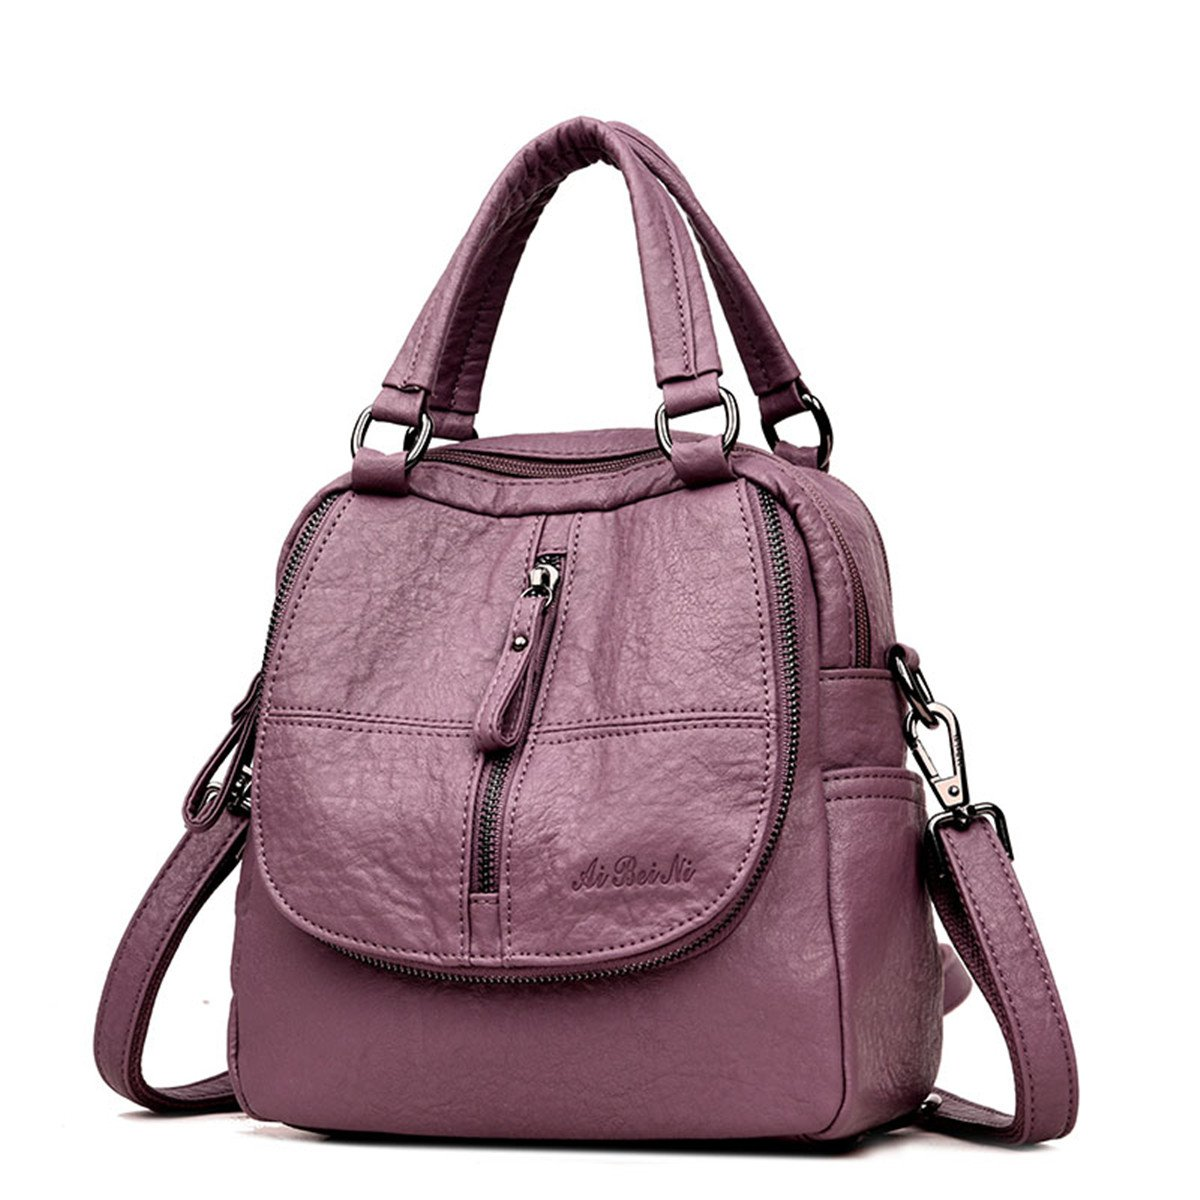 JOSEKO Fashion Backpack, Women High-end Multifunction Soft PU Leather Handbag Double Layer Large Capacity Backpack Purple